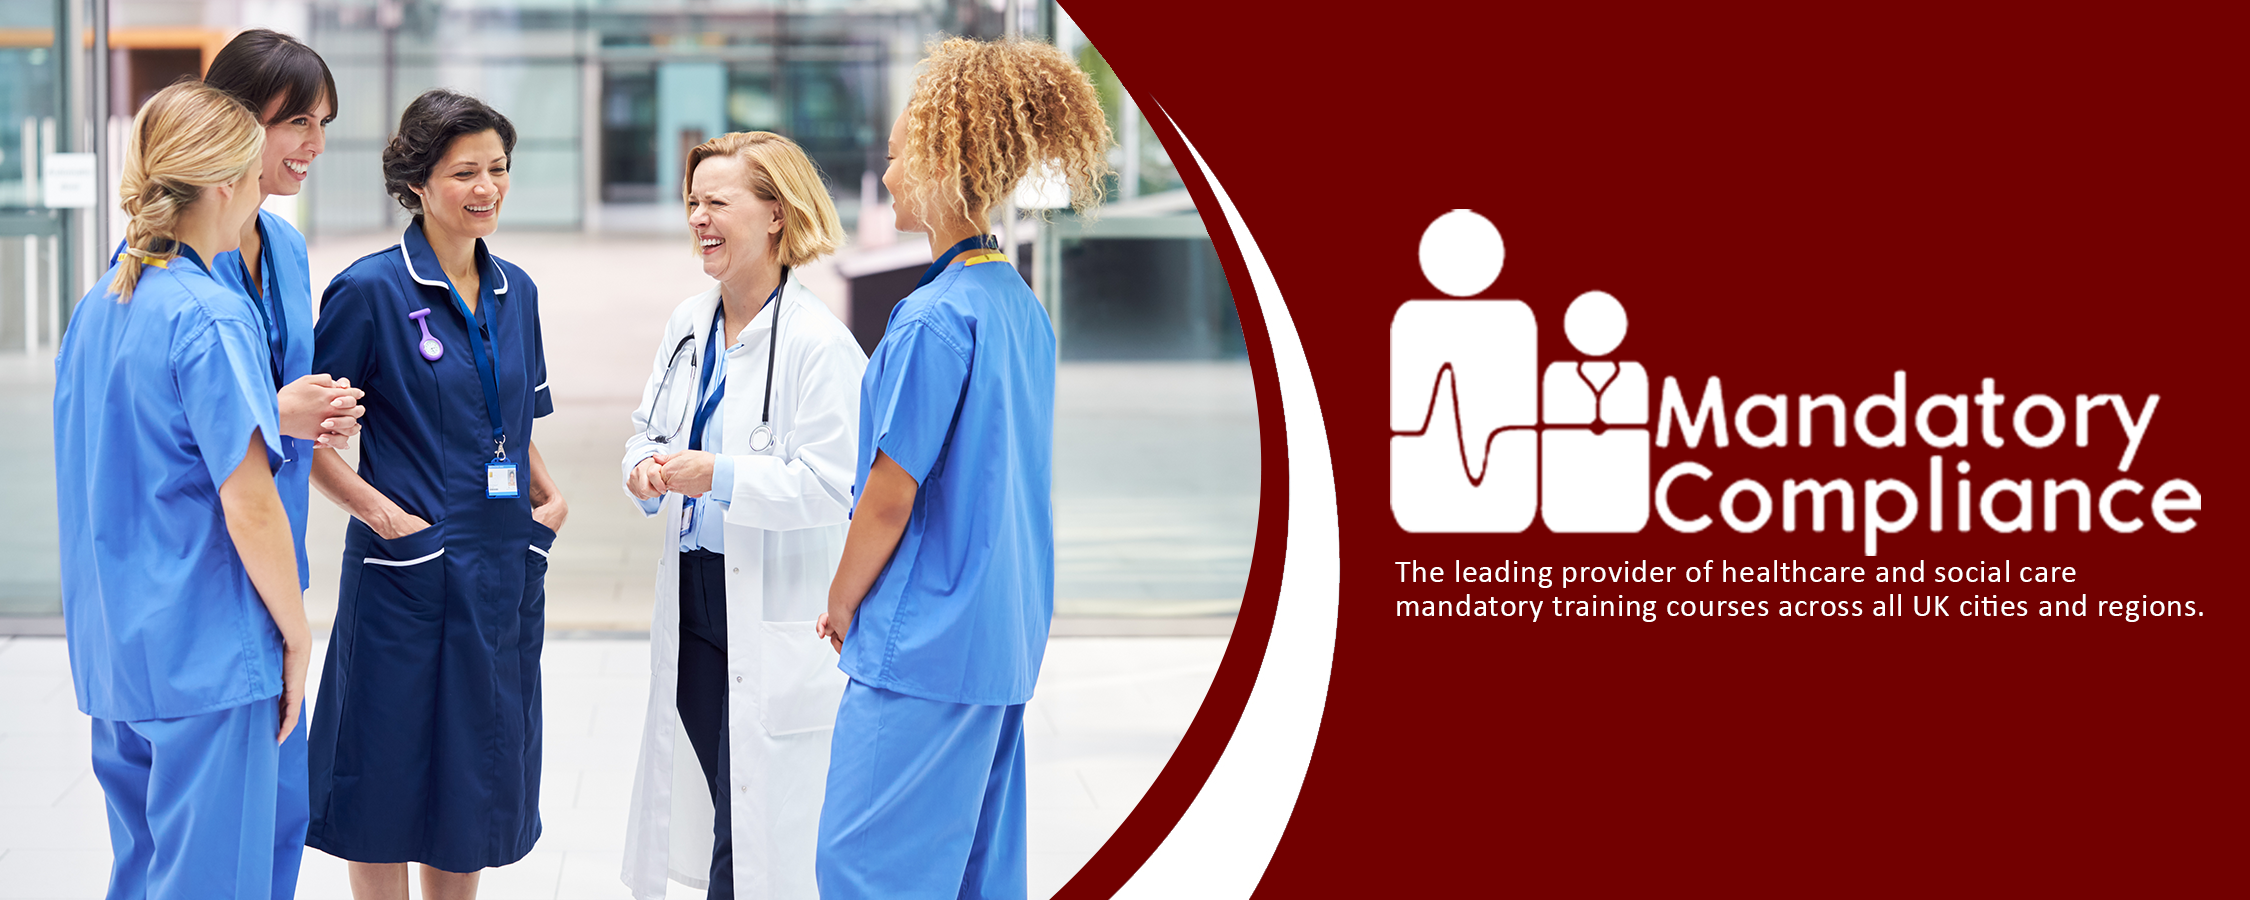 Chaperone in Healthcare – Level 2 - E-Learning Courses - Mandatory Compliance UK -